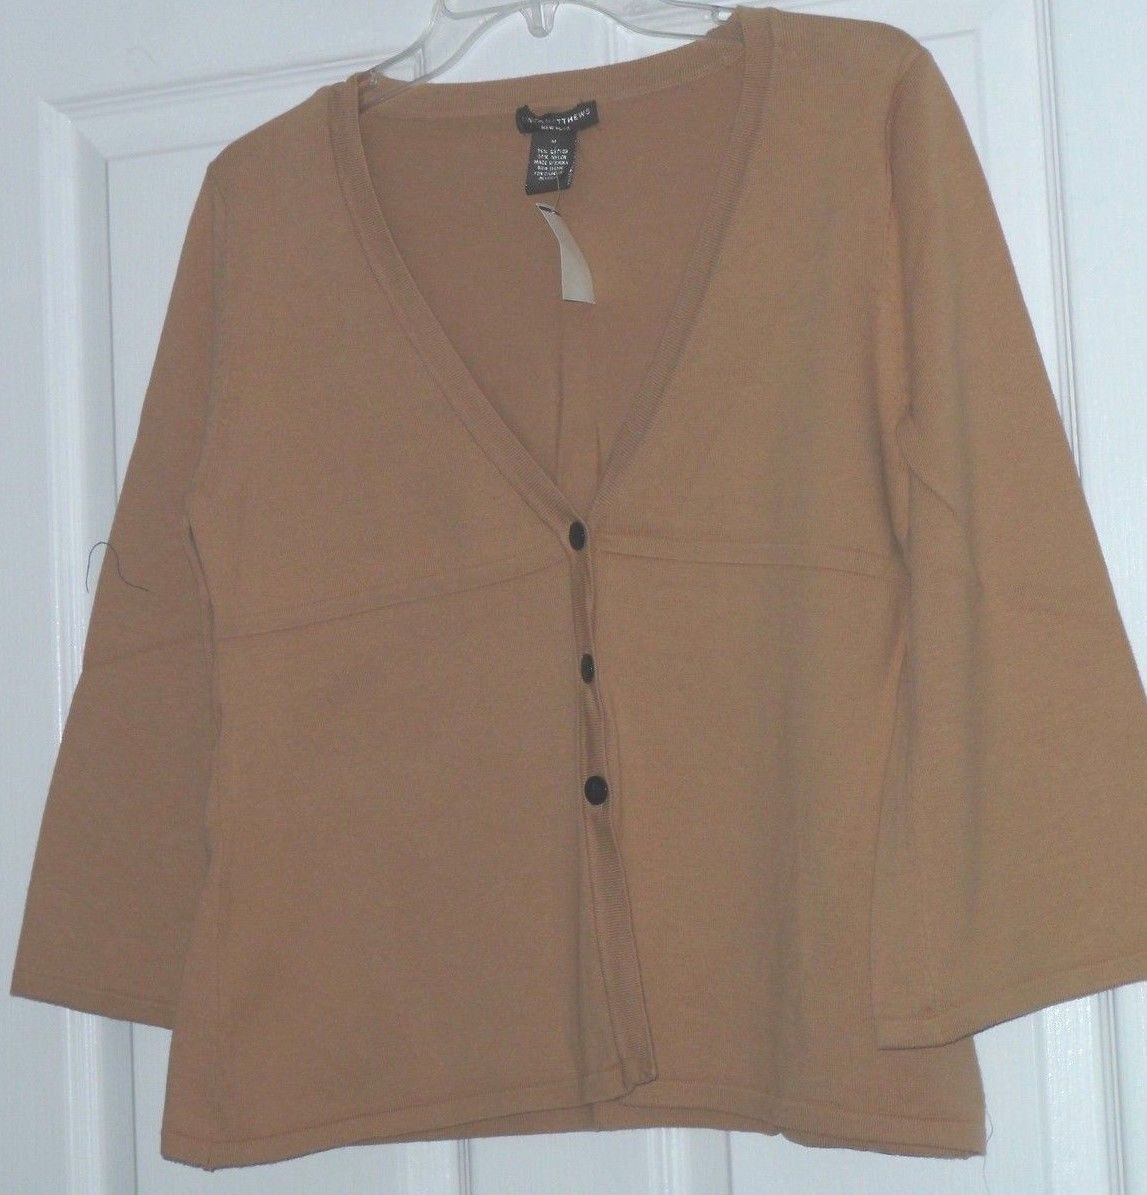 LINDA MATTHEWS SWEATER SIZE S - M RED TAN PALE GRAY BUTTON FRONT LIGHTWEIGHT NWT